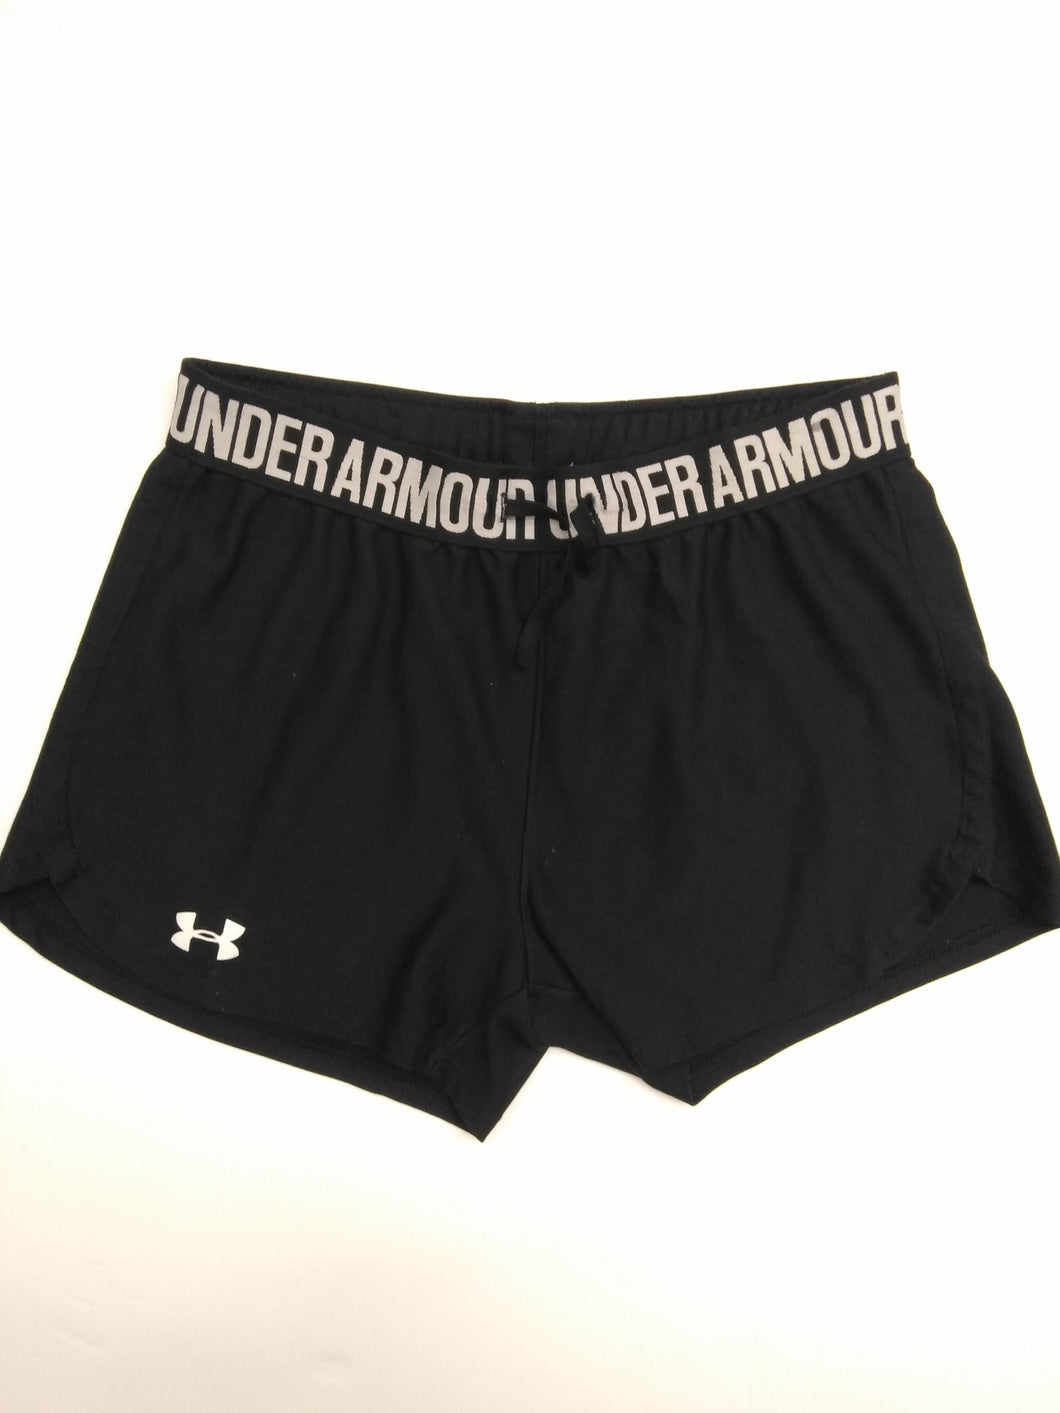 Under Armour Womens Athletic Shorts Size Small